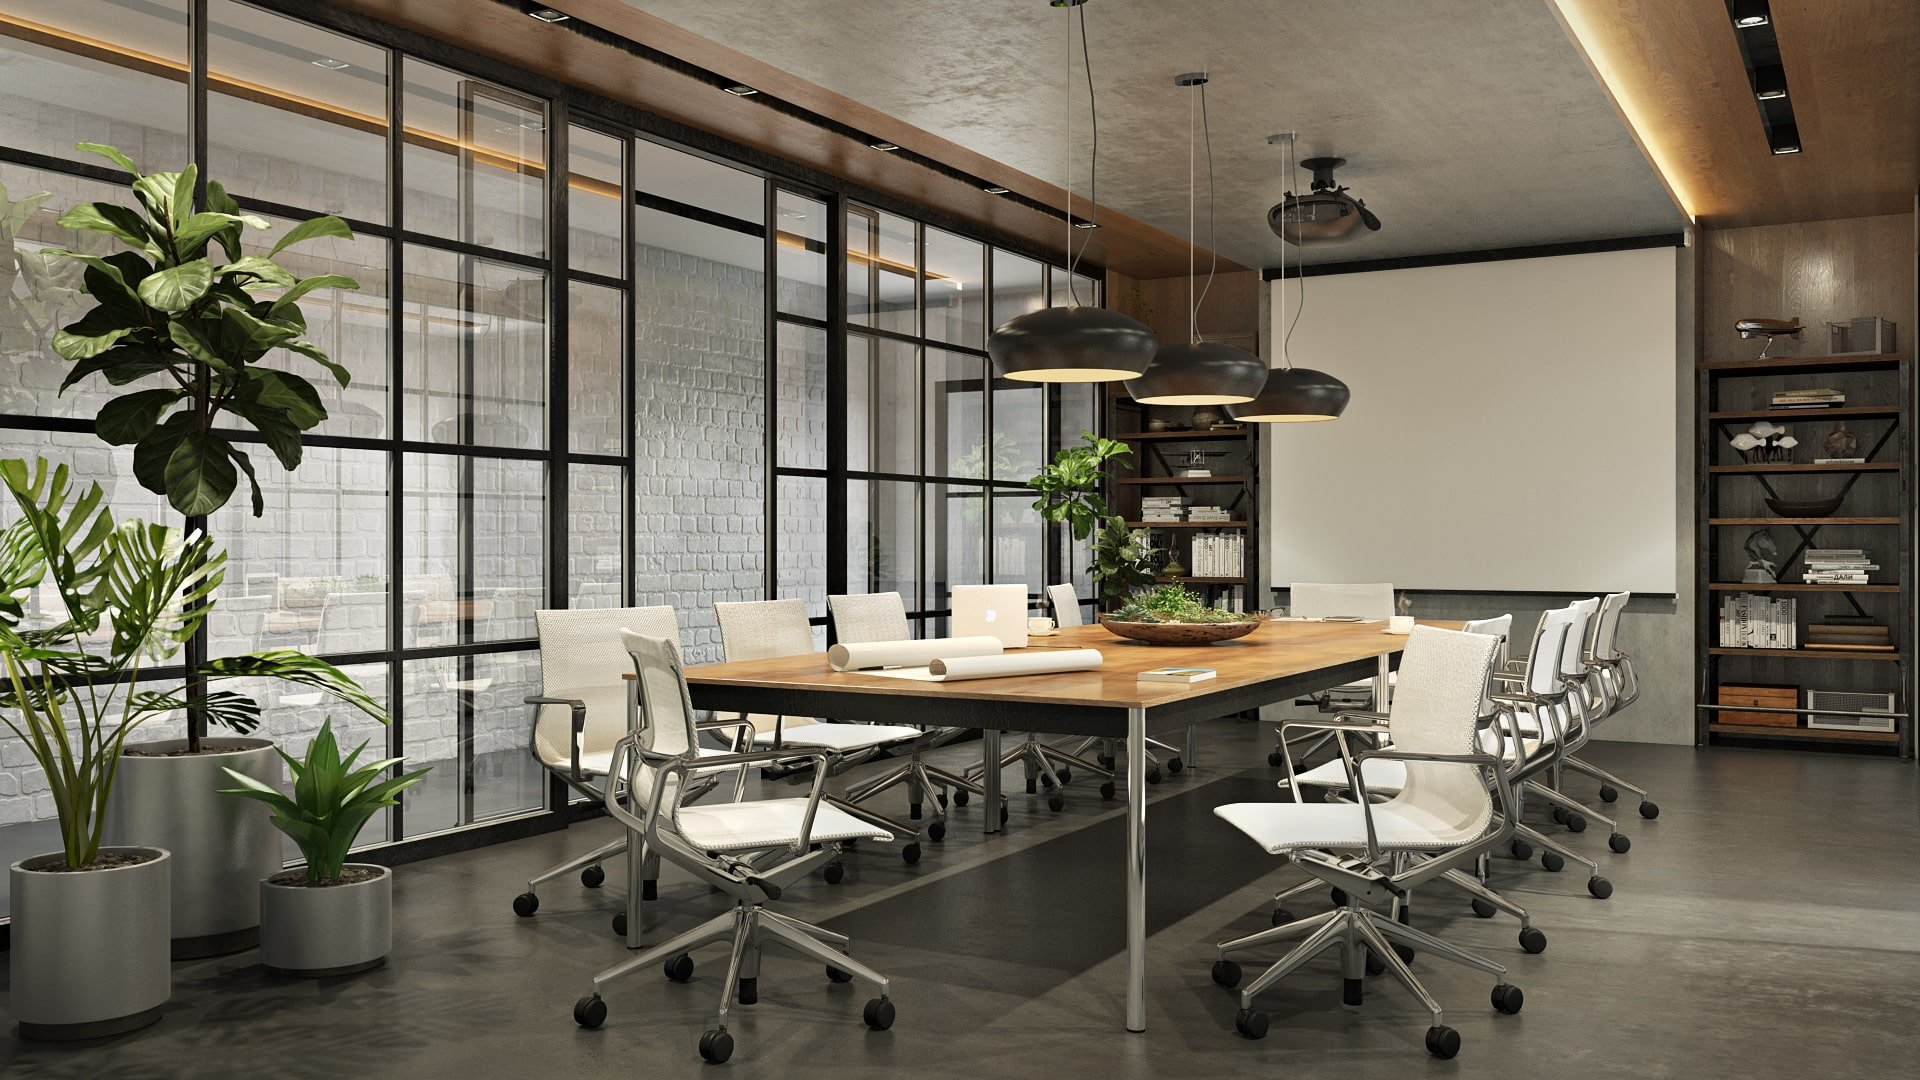 3D Visualization to Present an Imposing Office Interior